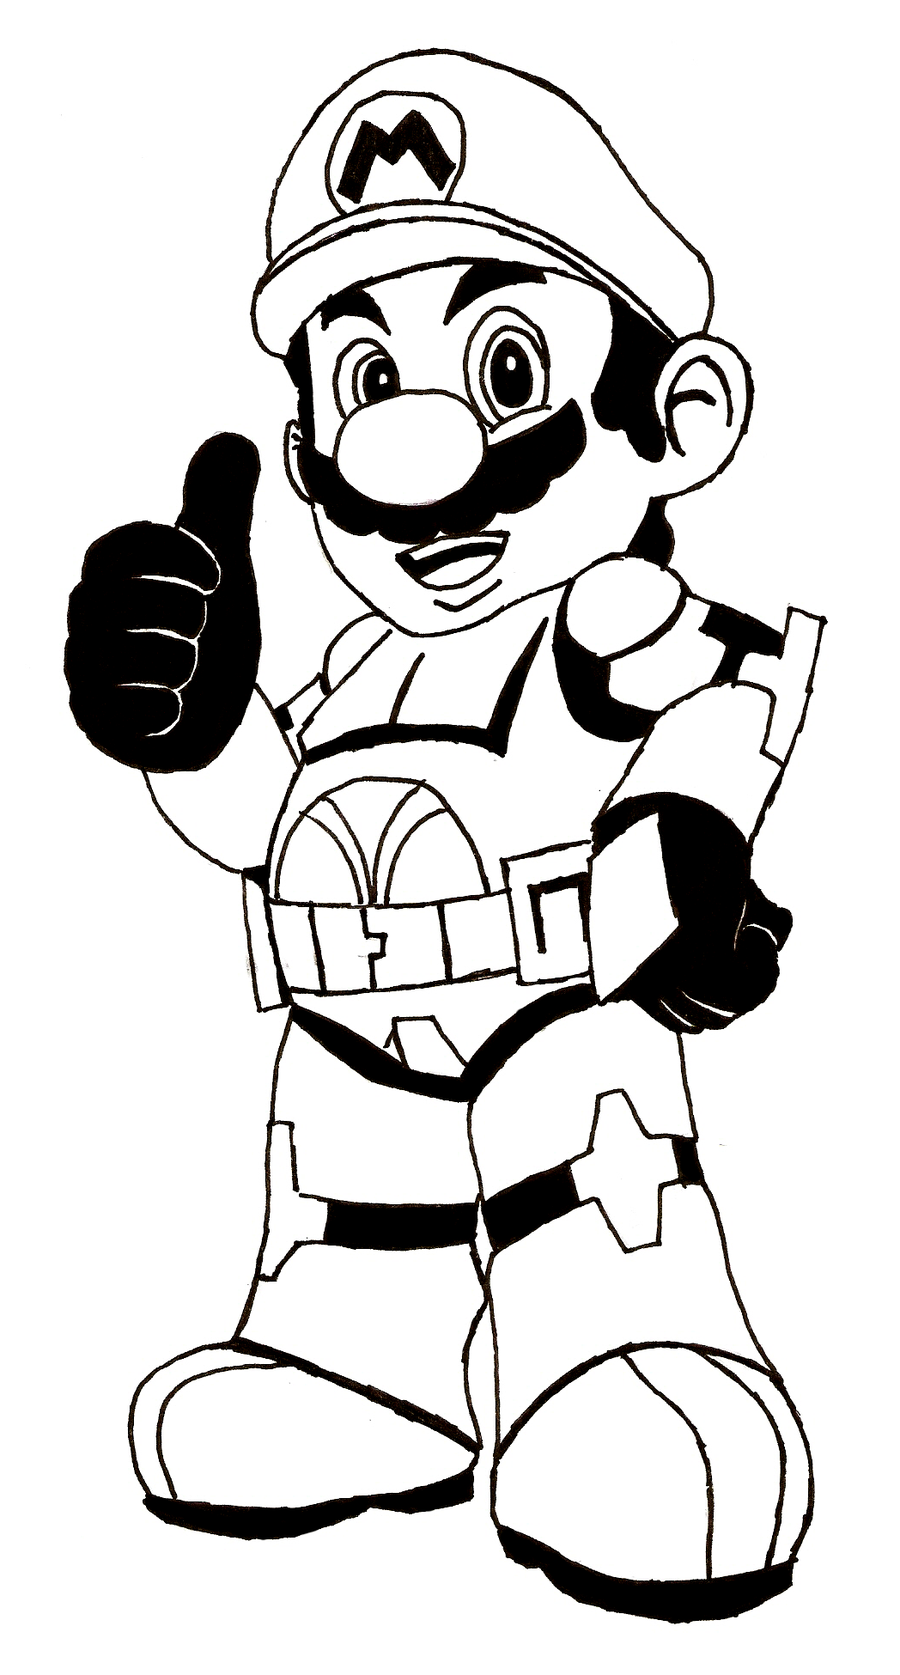 It's just an image of Versatile Mario Coloring Pages To Print